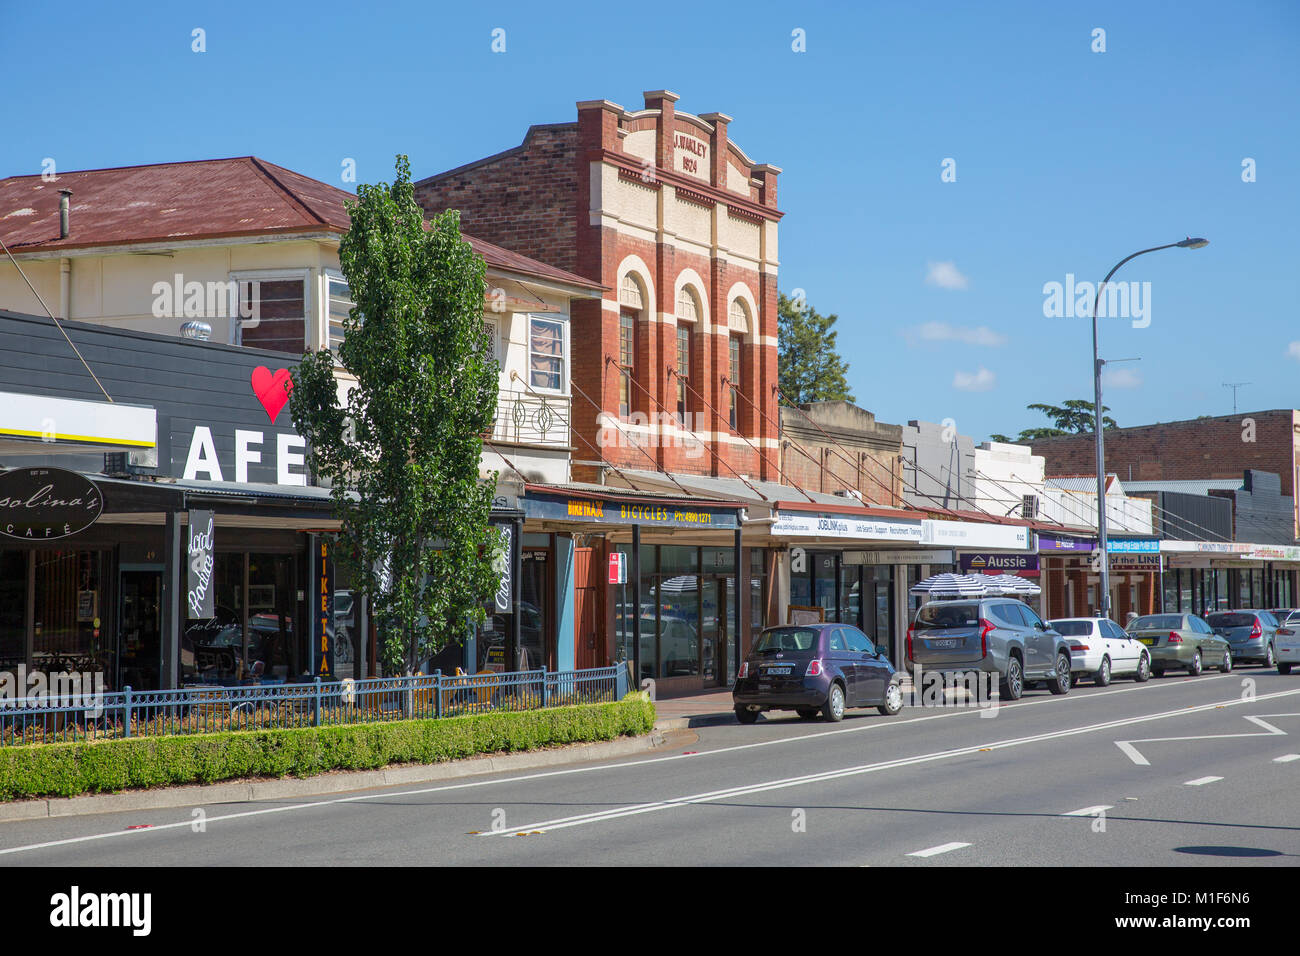 Town centre in Cessnock,Cessnock is a city in the Hunter region of New South Wales,Australia Stock Photo